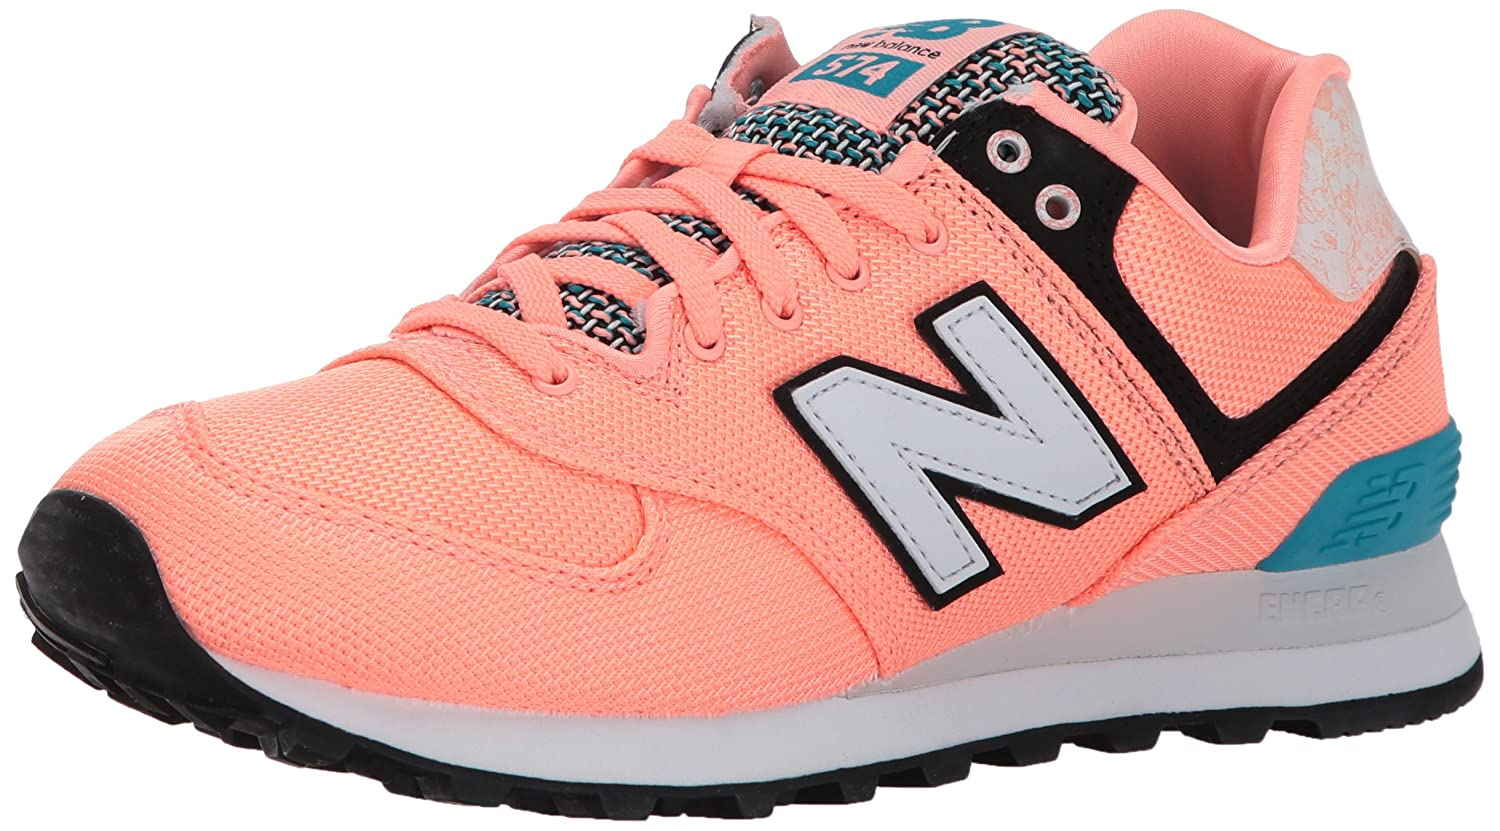 New Balance Women's 574v1 Art School Sneaker B01MTQ867U 6.5 D US|Bleached Sunrise/Pisces